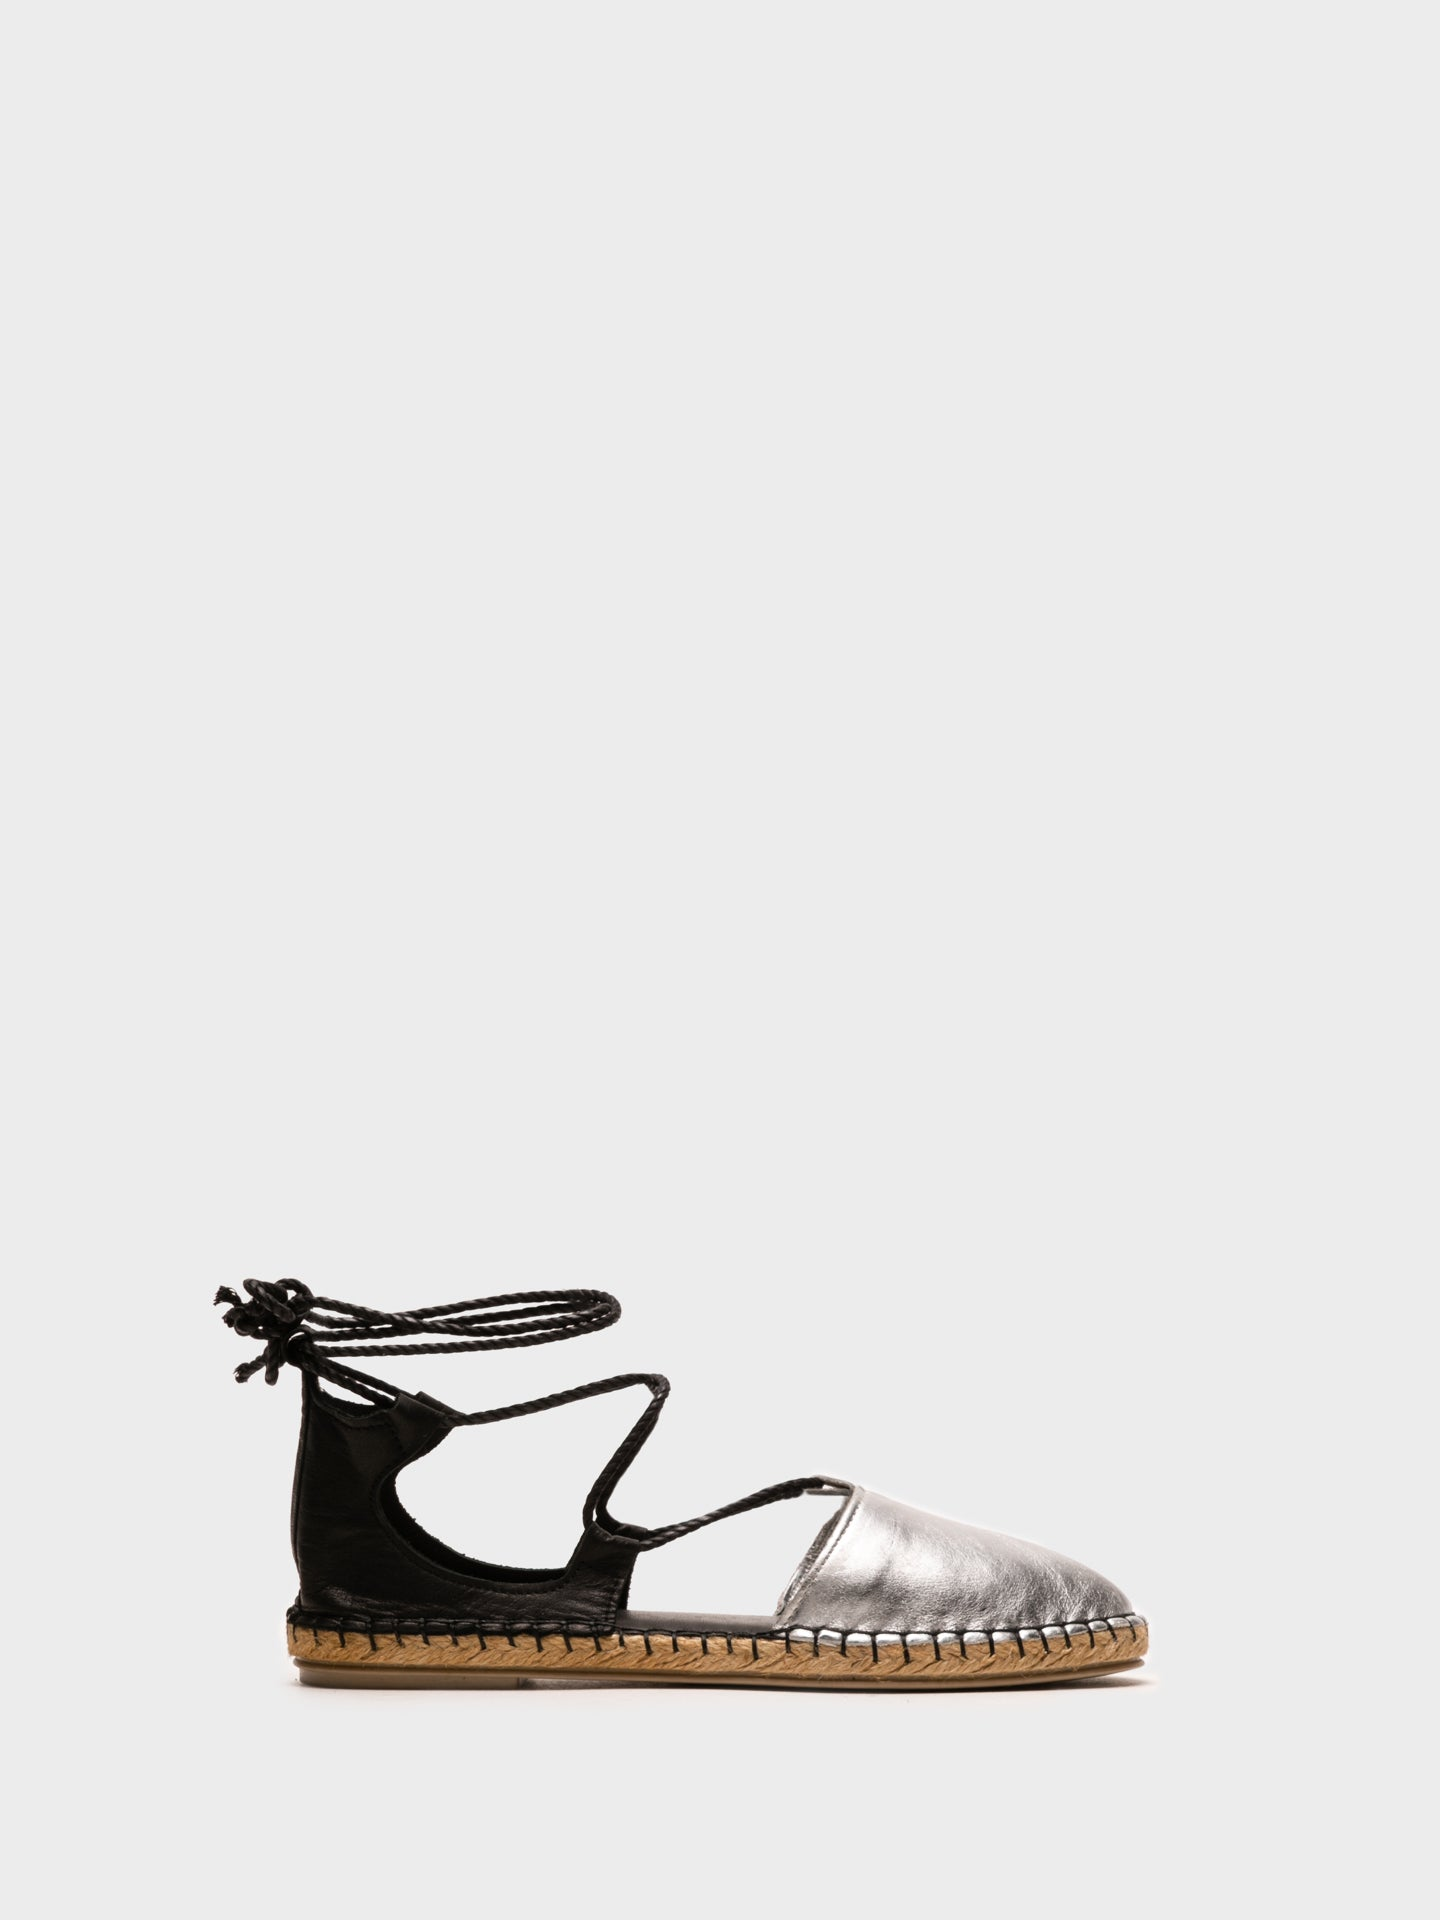 Foreva Black Lace-up Espadrilles